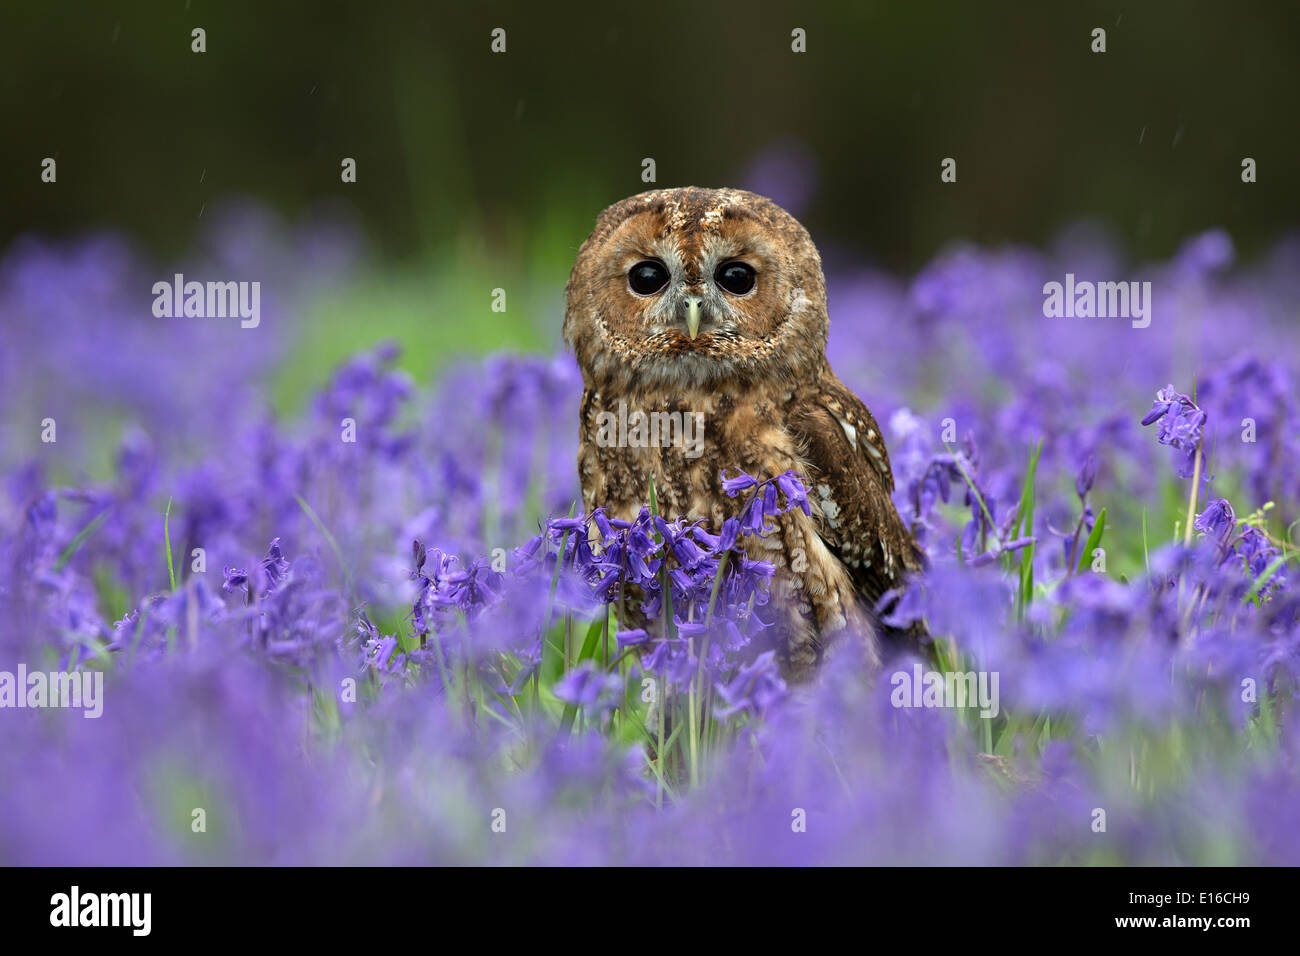 Tawny Owl, Strix aluco sitting in bluebells - Stock Image